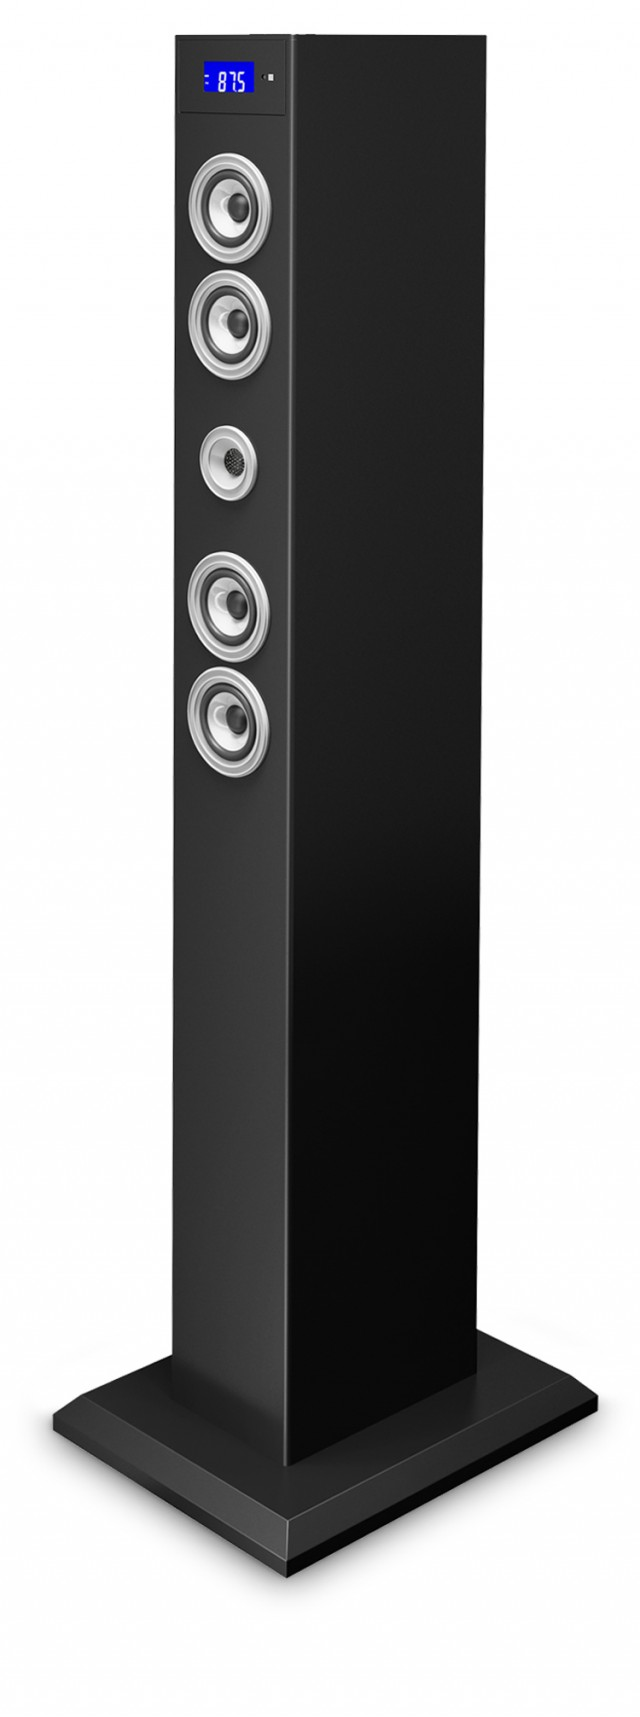 Torre Multimediale docking + micro USB Nera Bluetooth® - Packshot